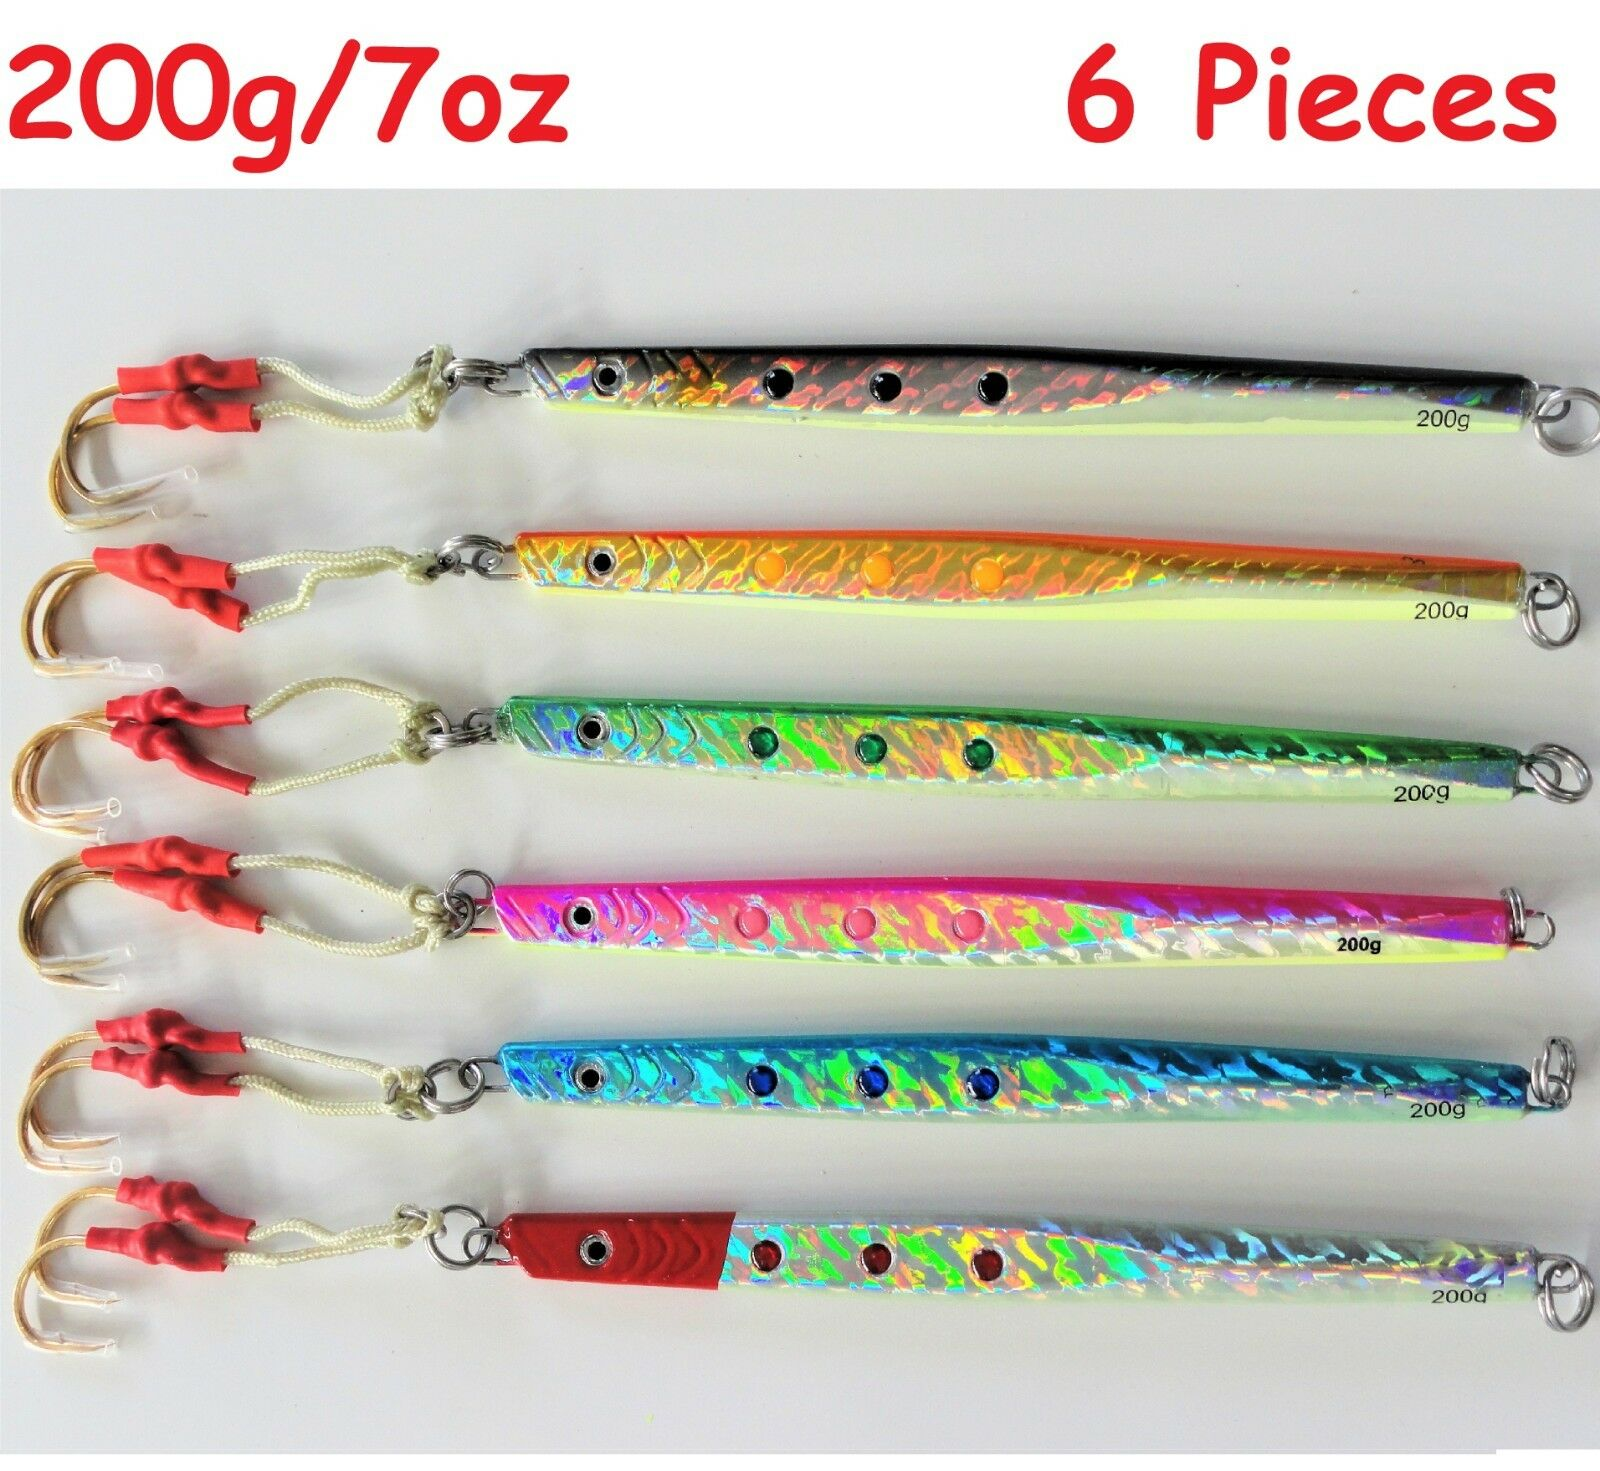 Qty 6 Speed Jigs 200g 7oz greenical Knife Butterfly Saltwater Lures select colors